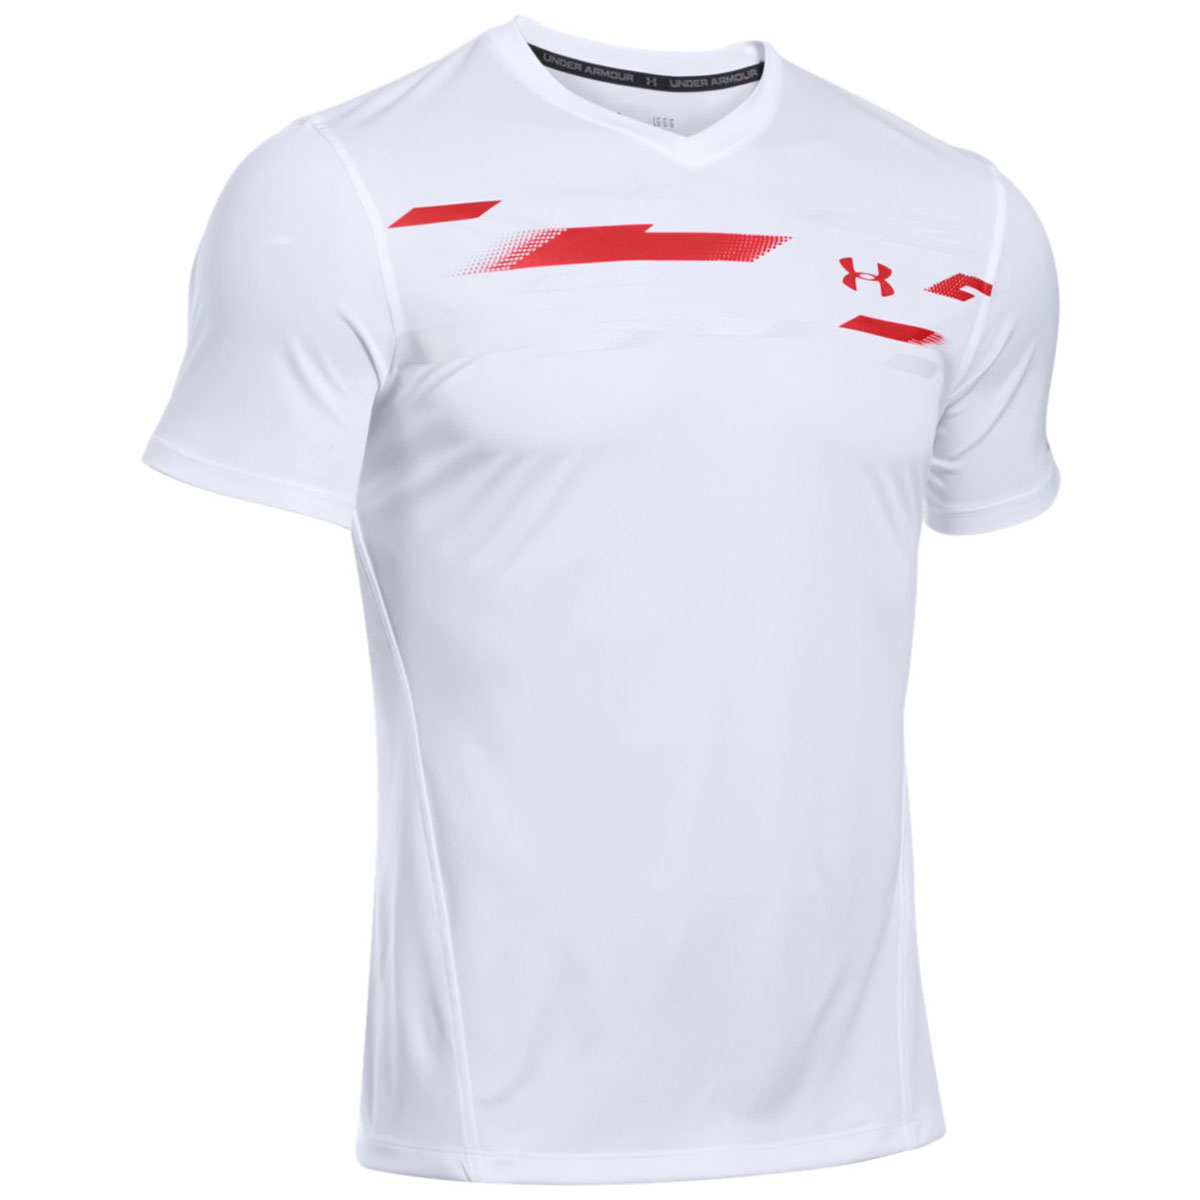 Under armour 2017 mens ua challenger graphic t shirt for Under armour lifting shirts